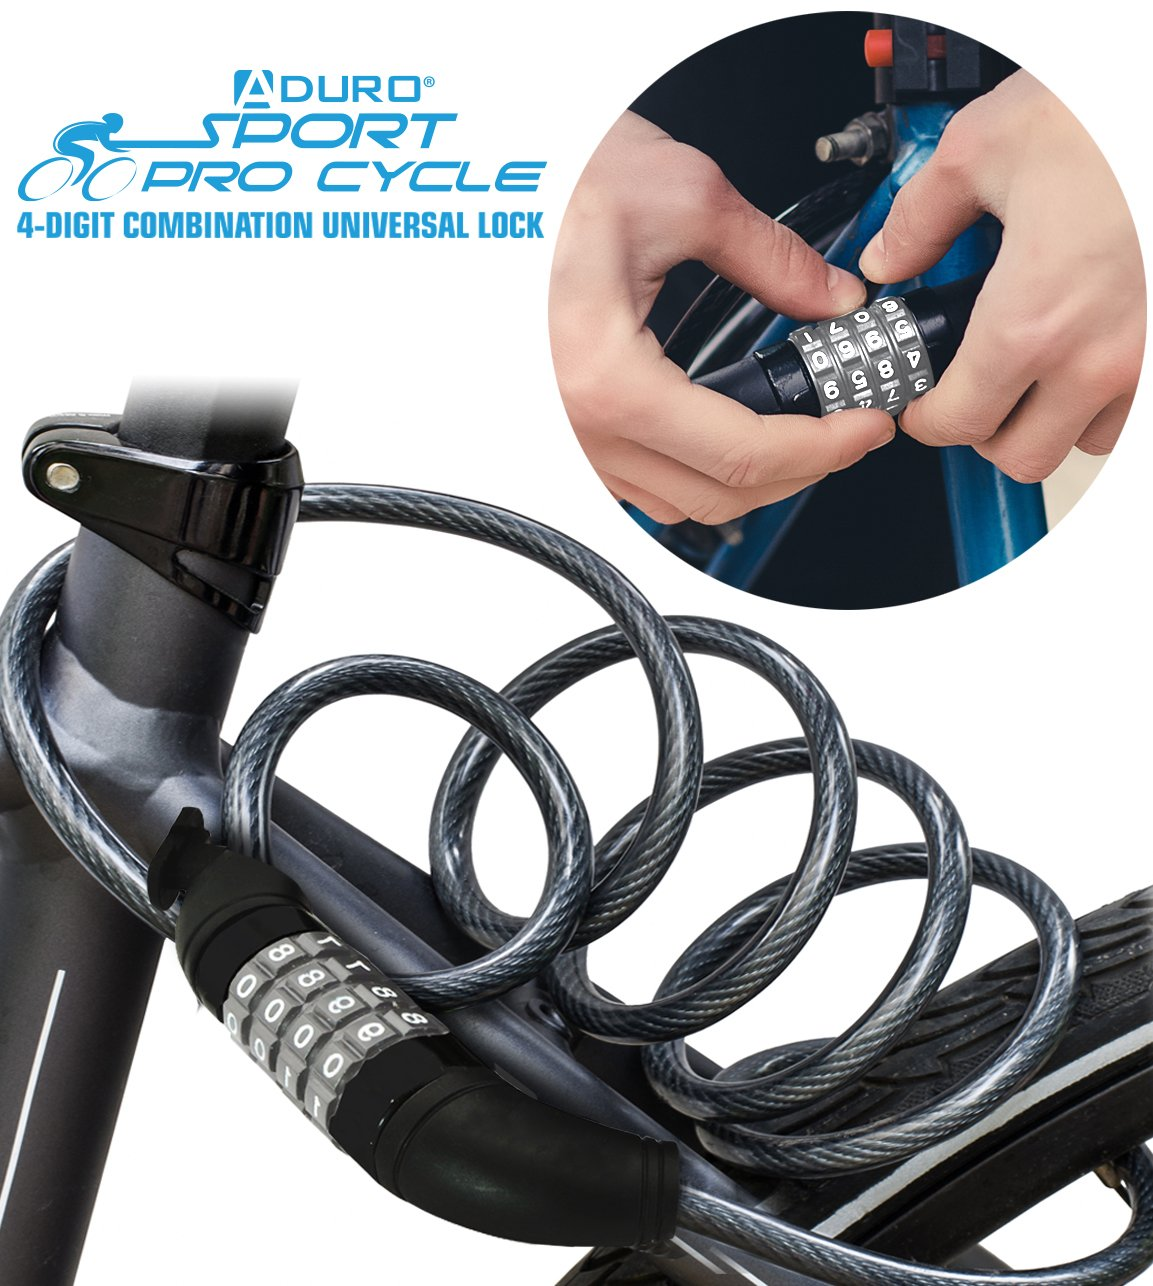 Aduro Sport Bike Lock Cable, 4-Feet Bicycle Master Cable Lock with 4-Digit Combination Lightweight Bike Chain Lock by Aduro (Image #2)